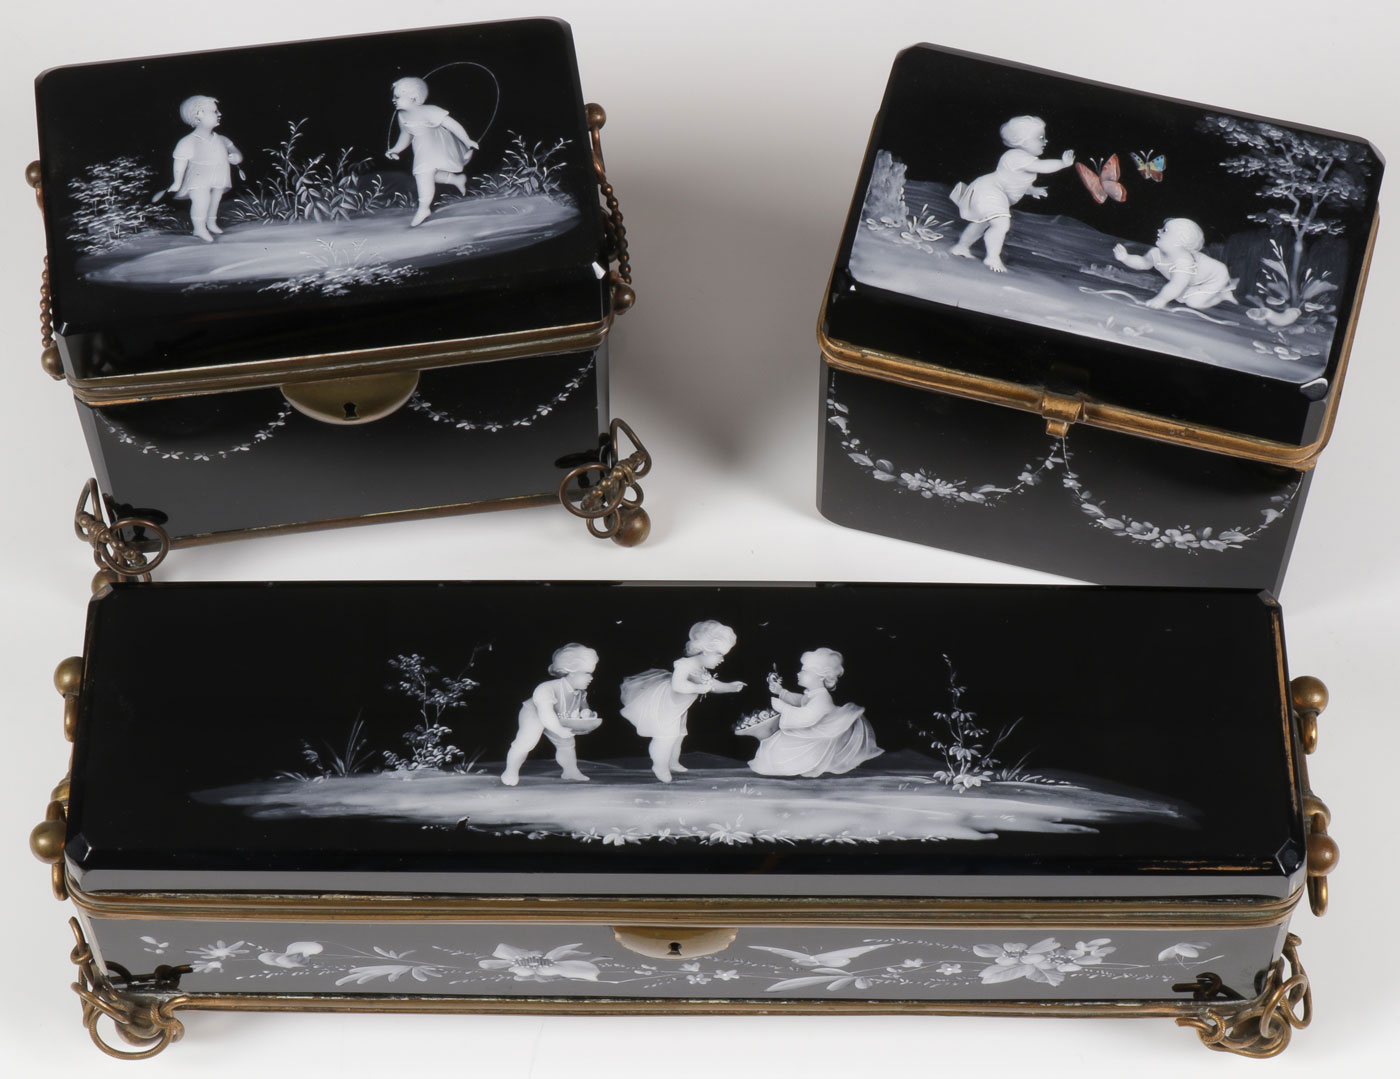 Lot 45 - THREE EXCEPTIONAL MARY GREGORY BOXES, C. 1880